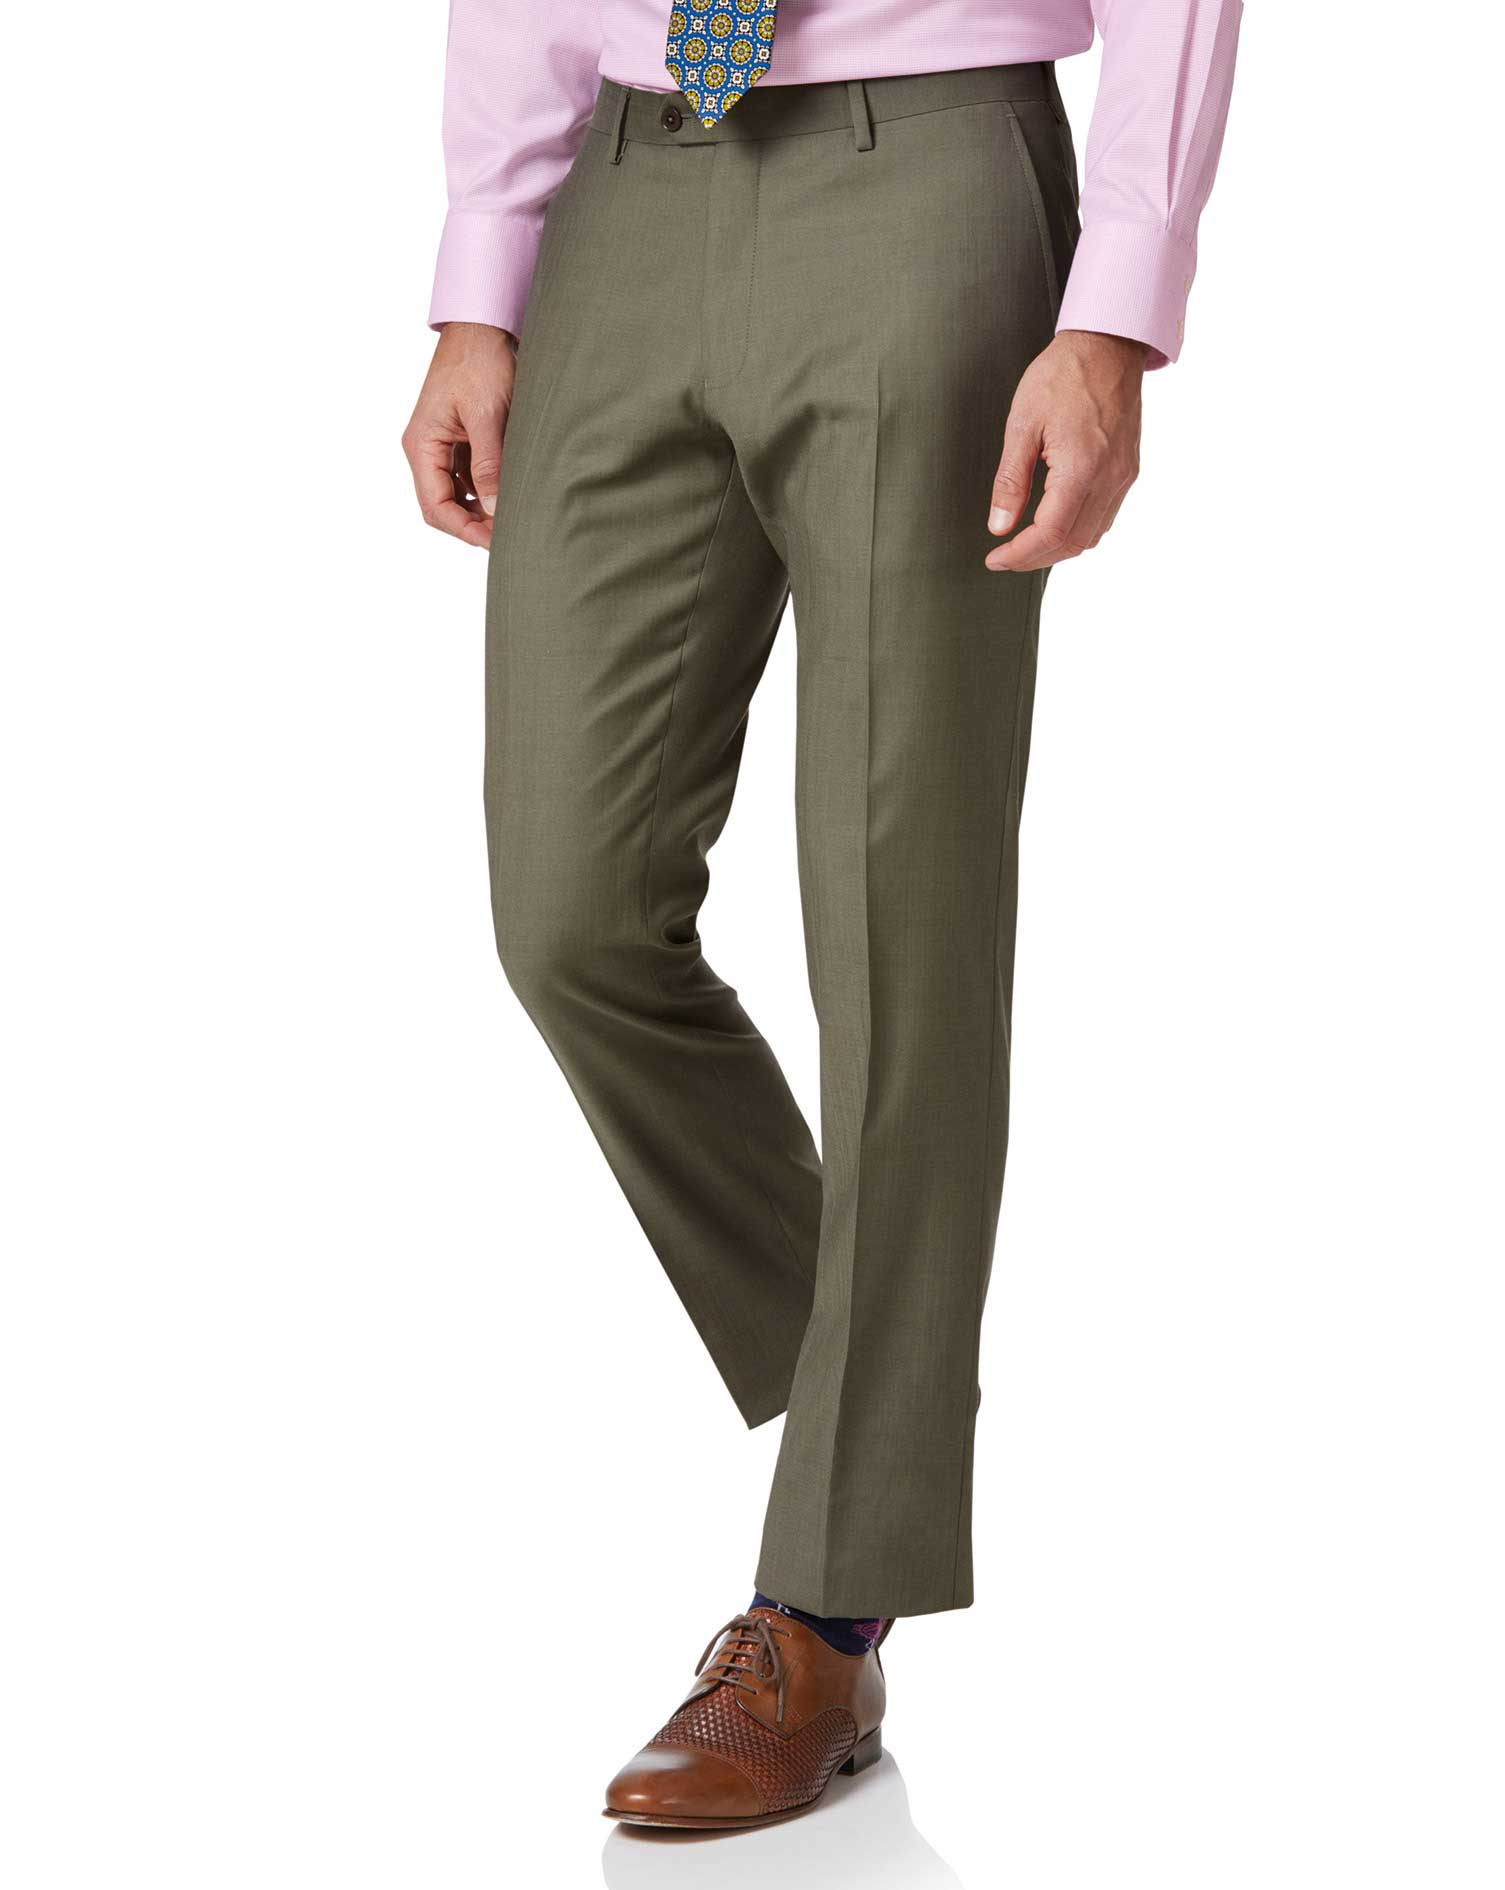 Olive Slim Fit Twill Business Suit Trousers Size W40 L32 by Charles Tyrwhitt